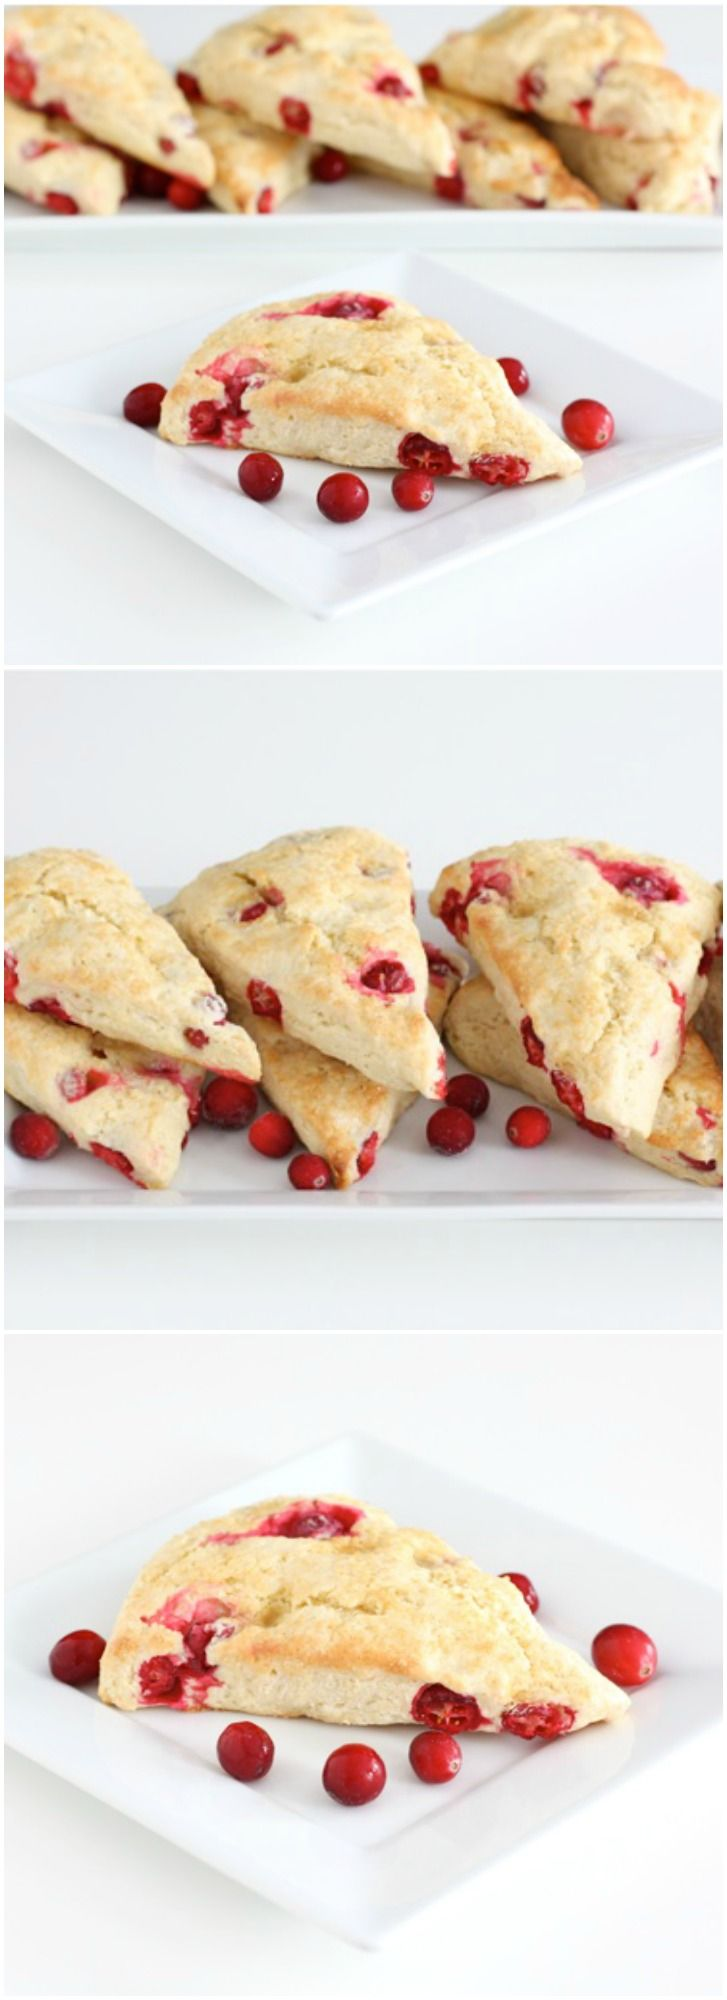 Fresh Cranberry Scones Recipe on twopeasandtheirpod.com These tender and buttery scones have pops of juicy tart cranberries. They are the perfect scones for the holiday season!